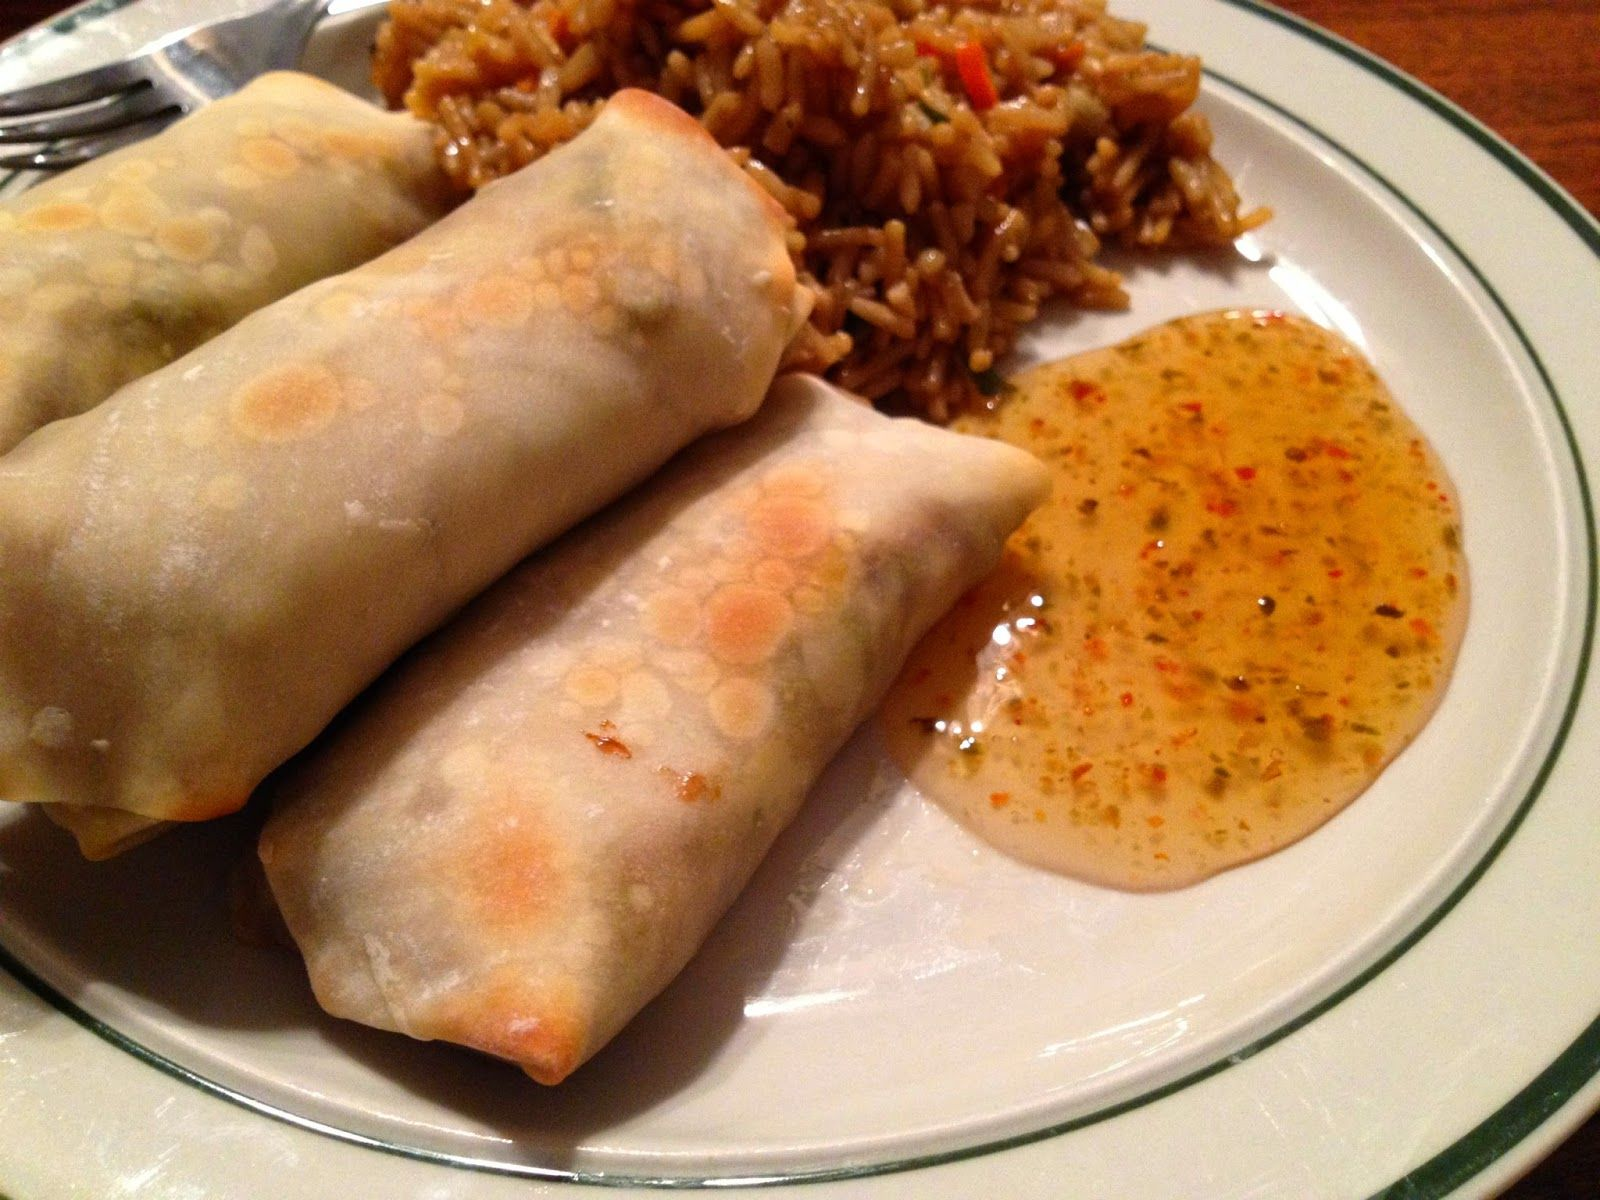 With Love by Jenni: Homemade Baked Egg Rolls Recipe